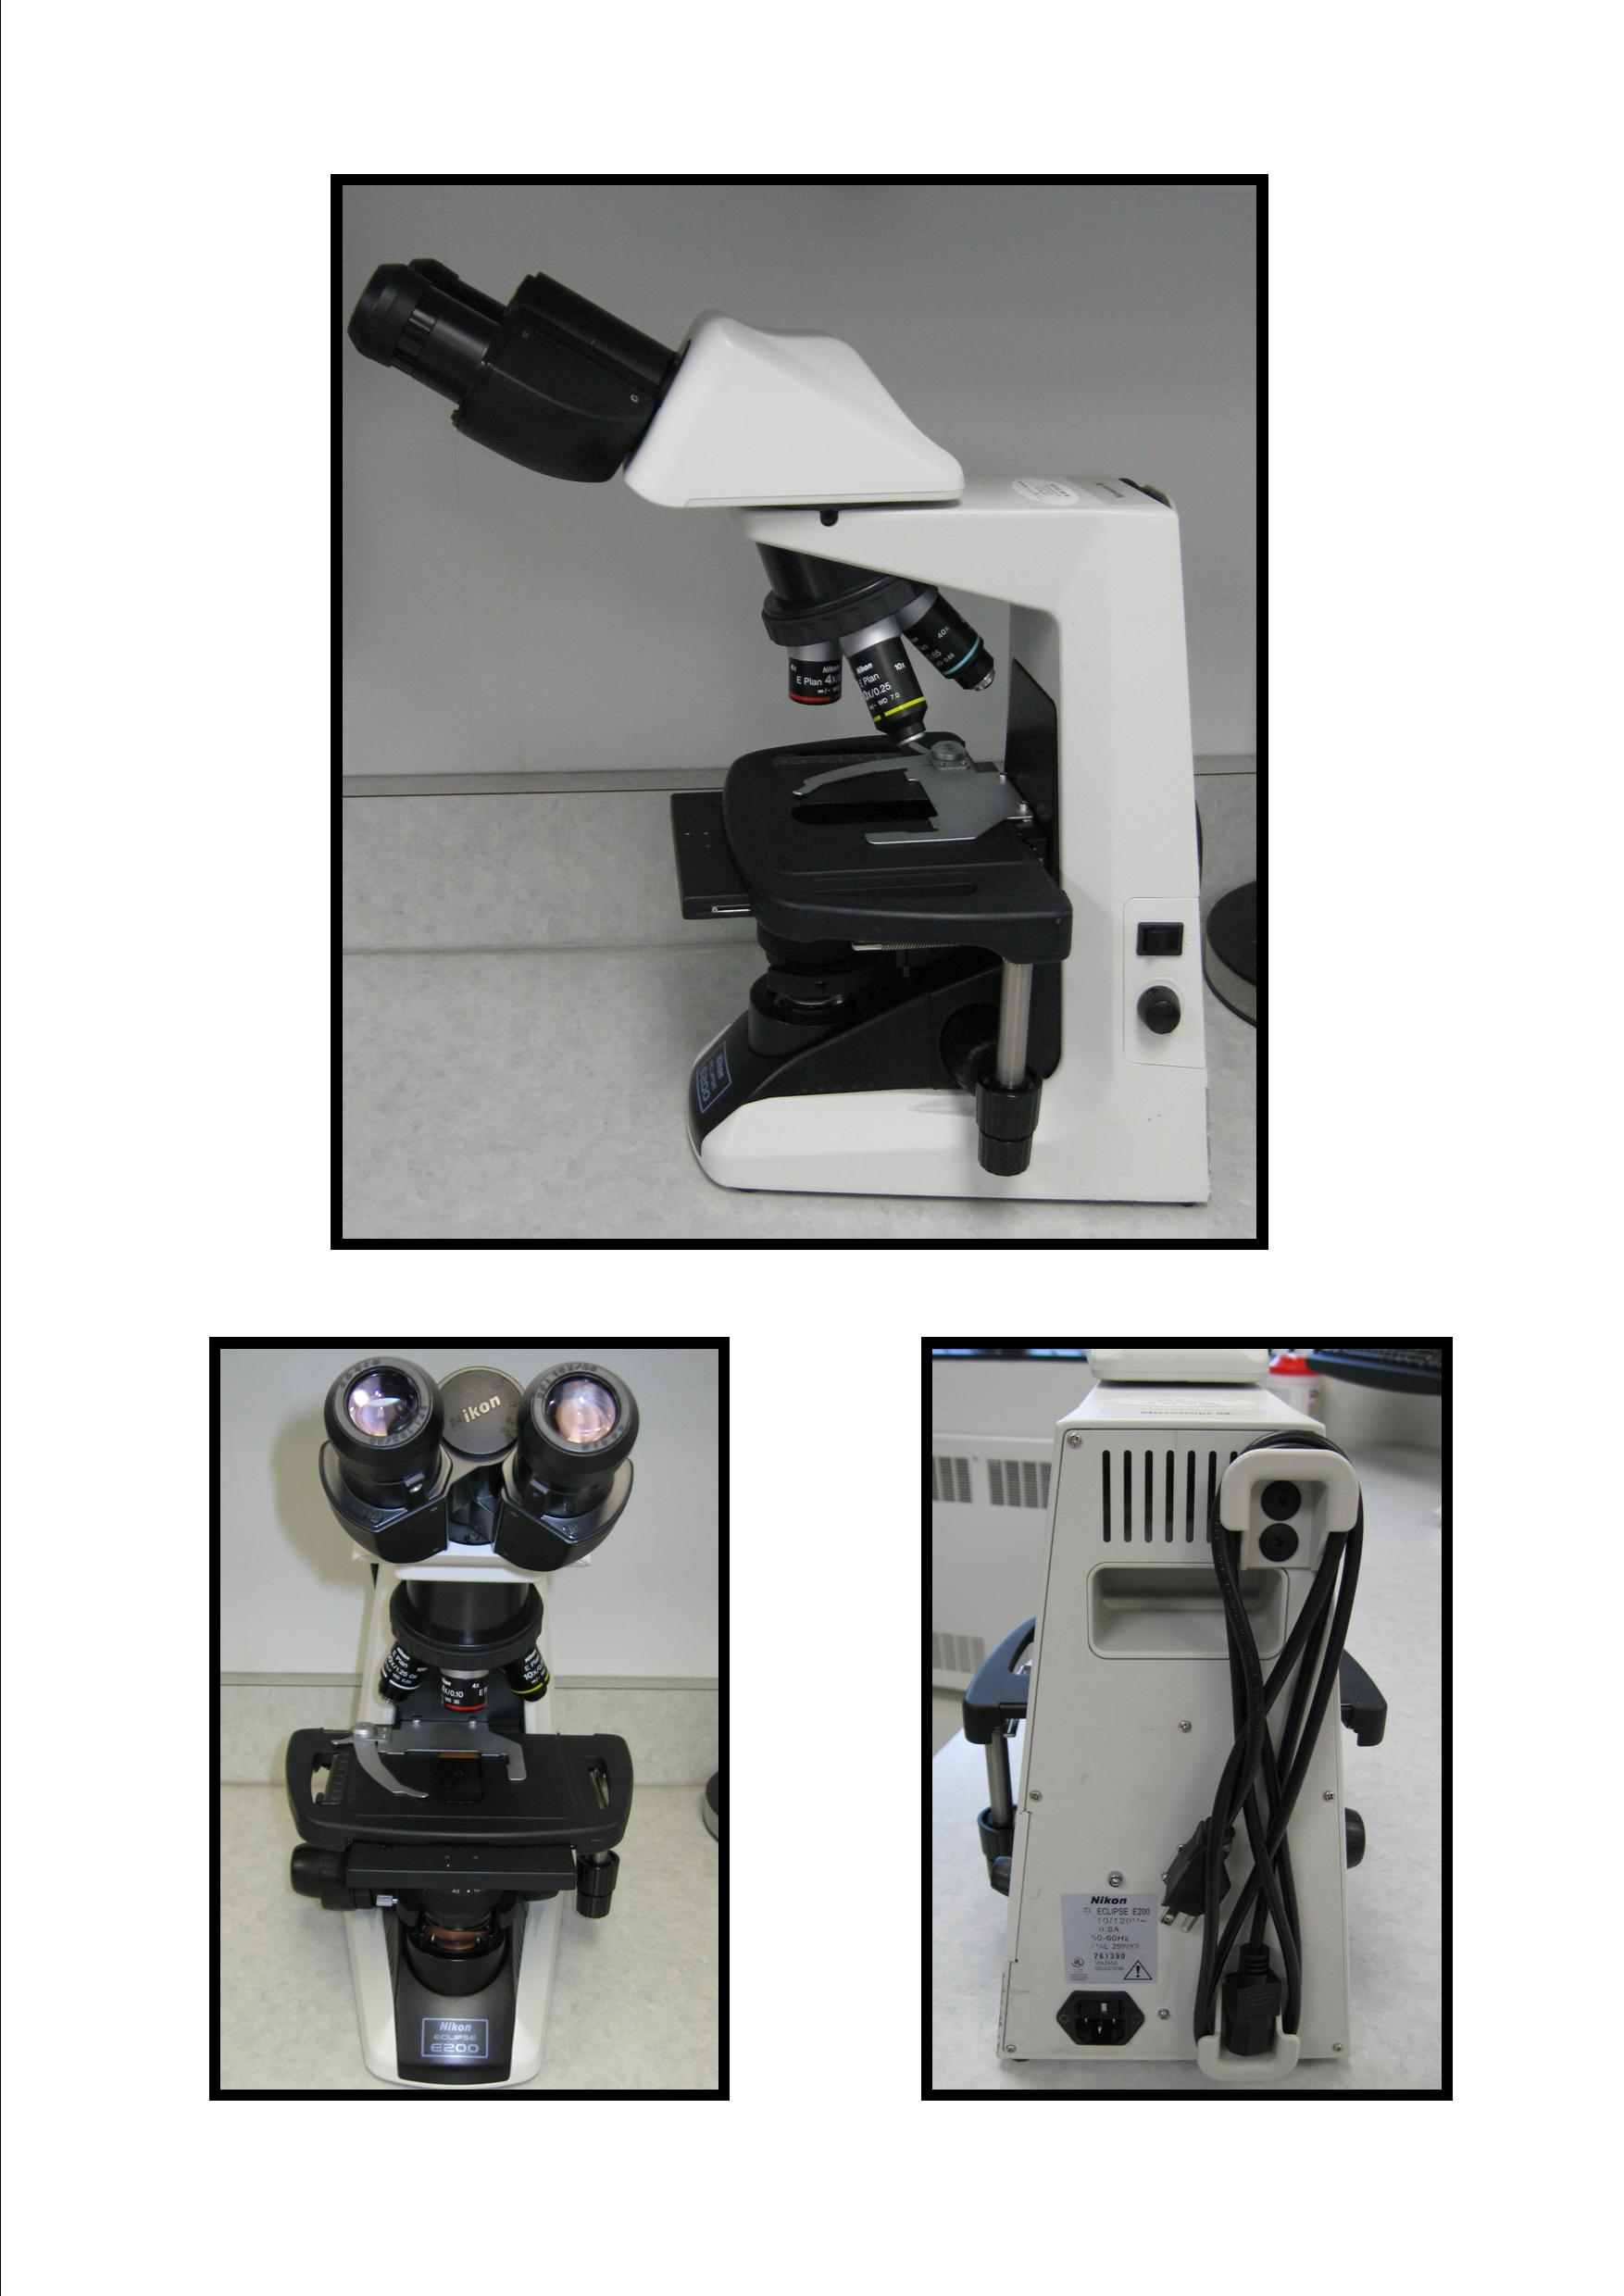 Nikon Microscope Eclipse E200 shown from three angles including the eye pieces, the back with the cord, and the entire microscope from the side.